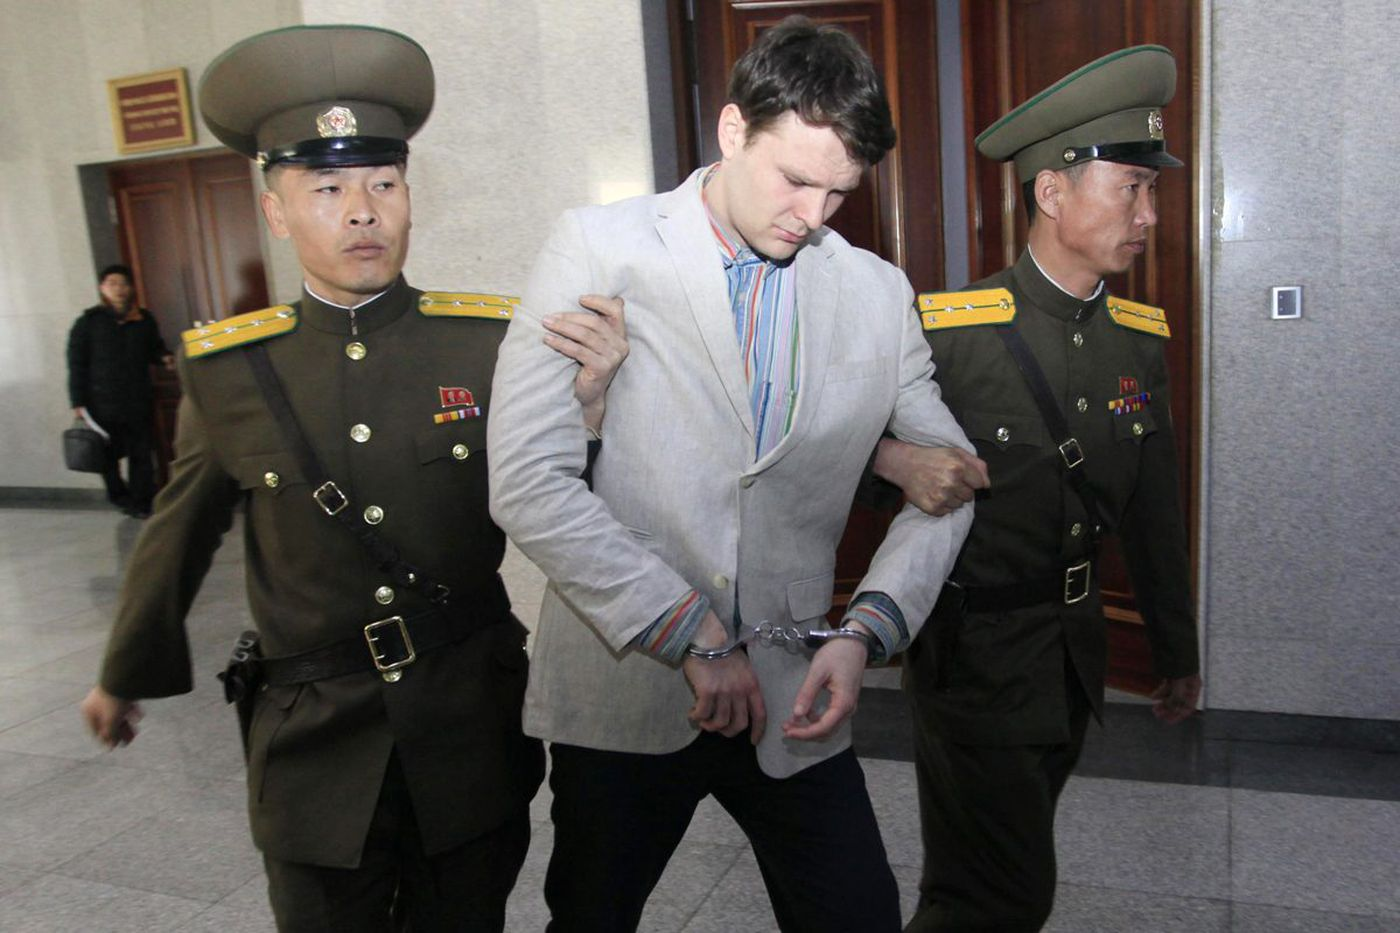 U. Delaware prof under fire for saying Otto Warmbier got 'what he deserved' in N. Korea